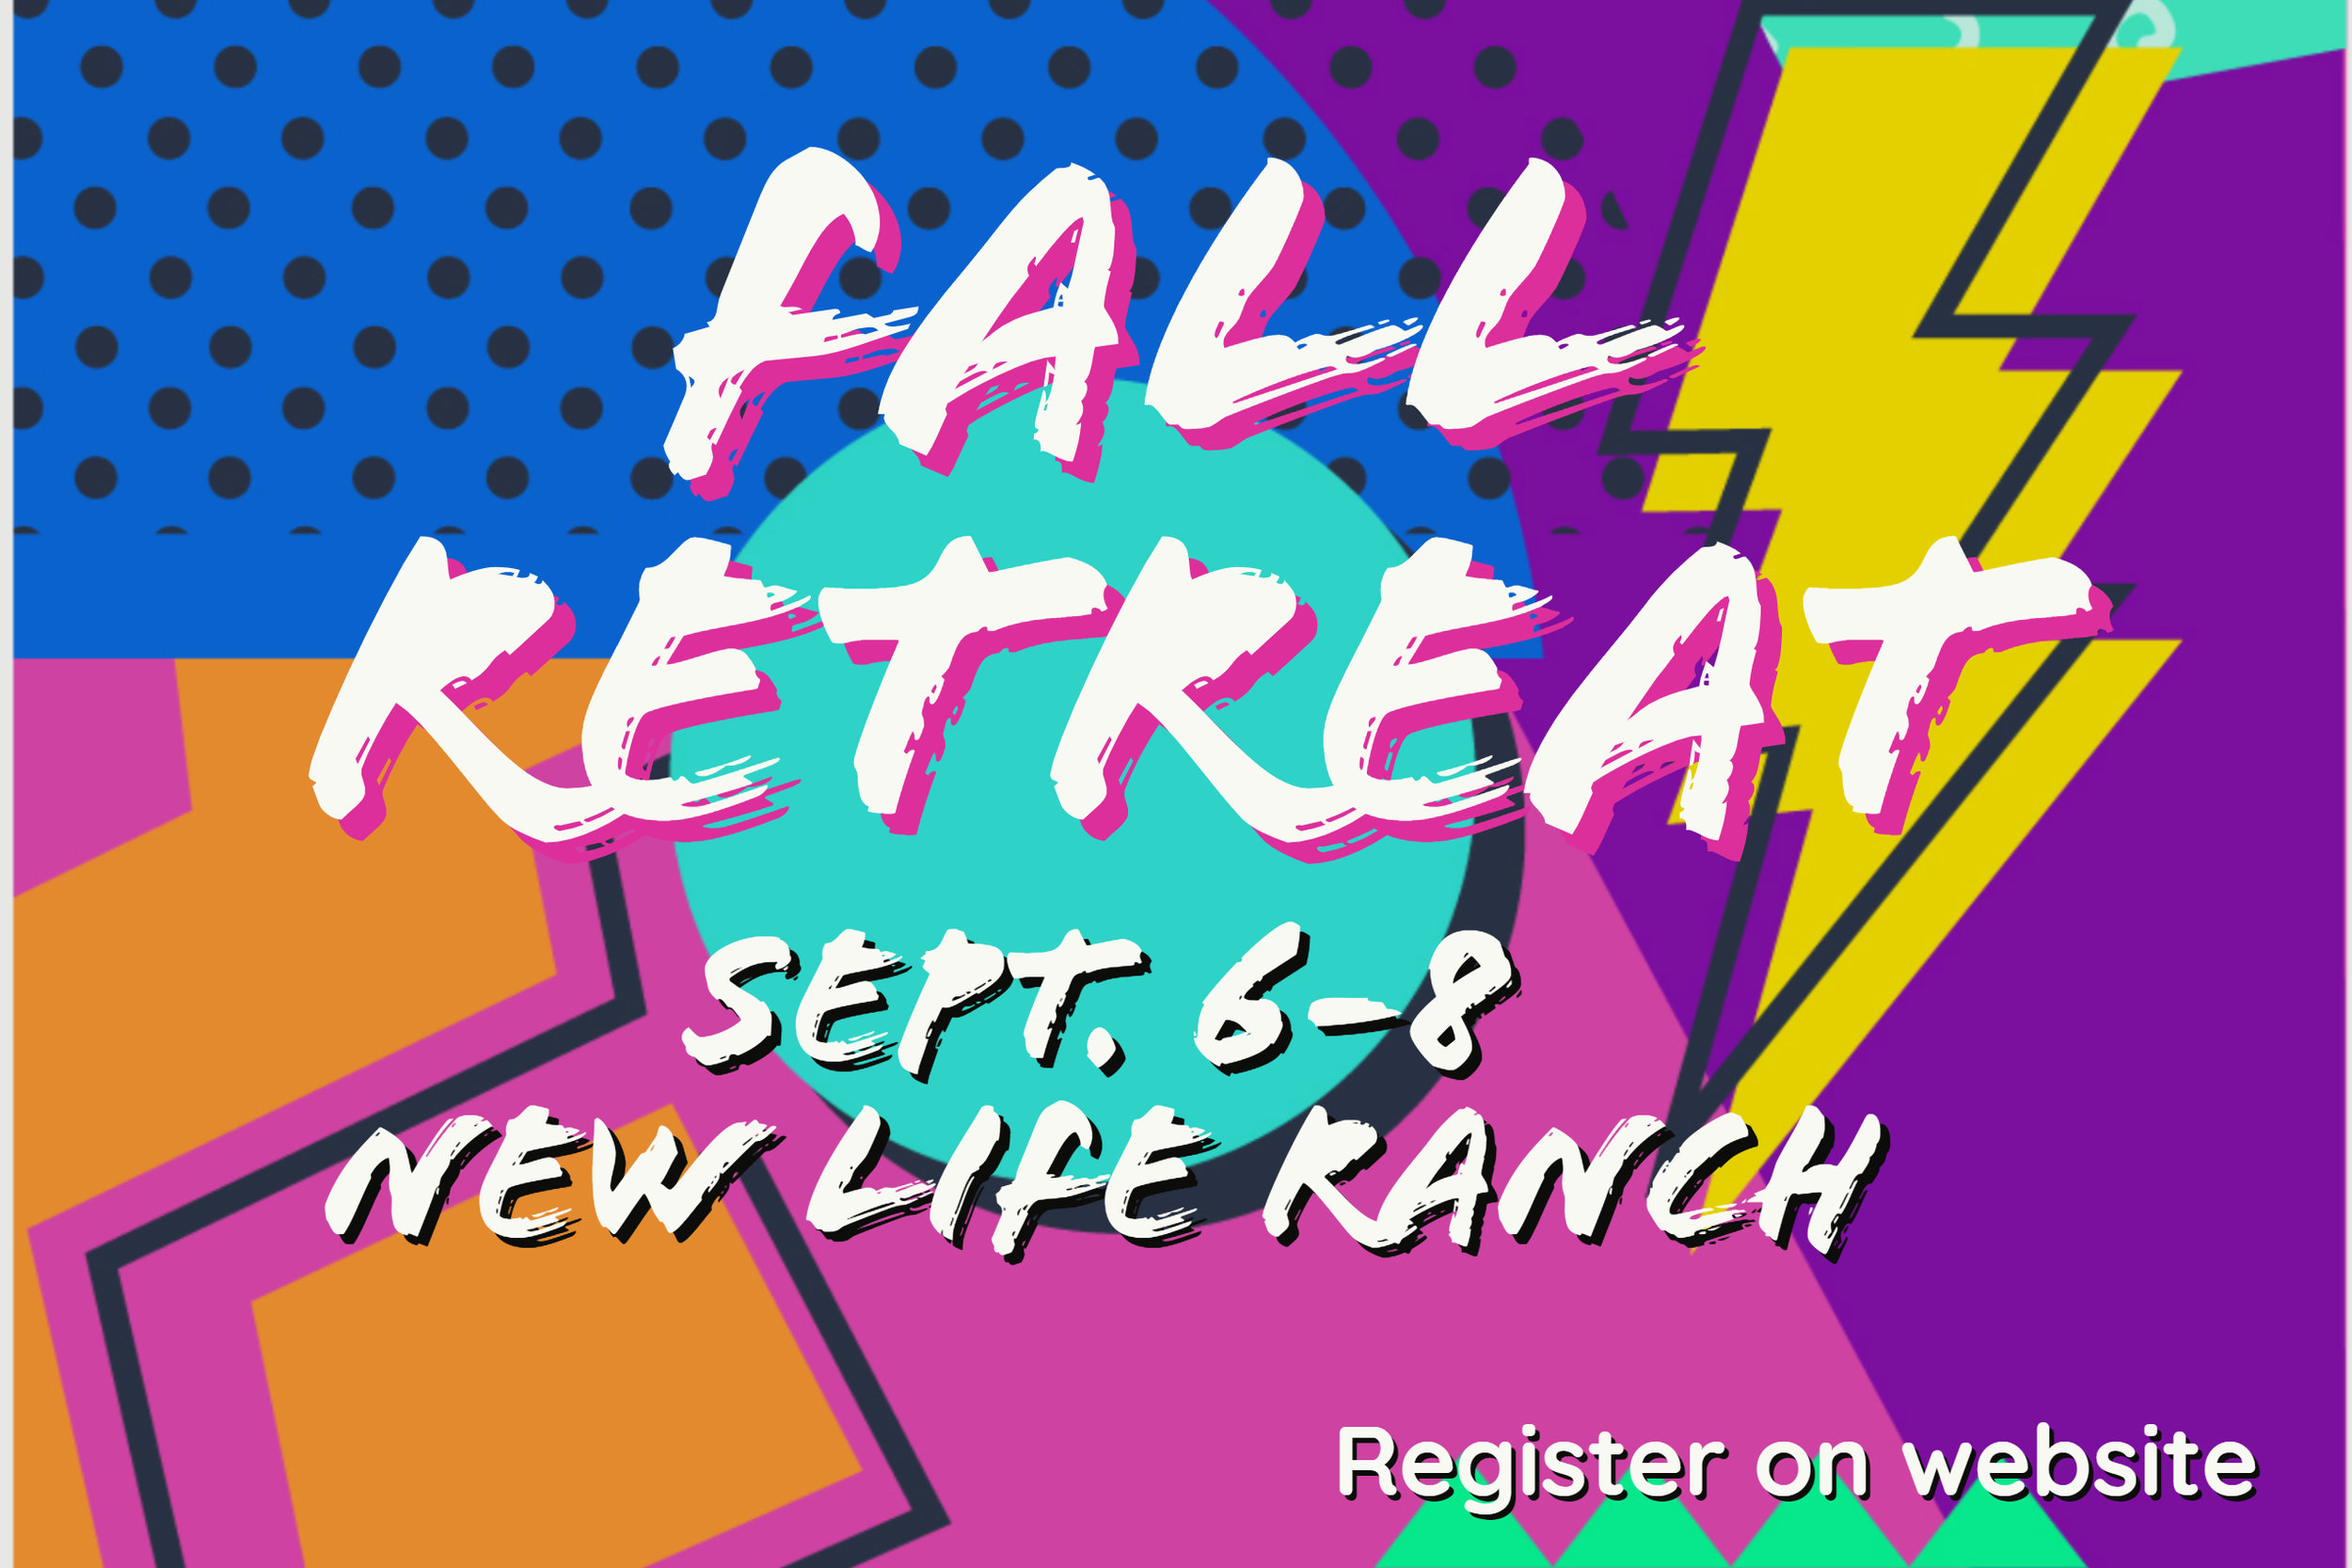 fall retreat image with registration.jpg